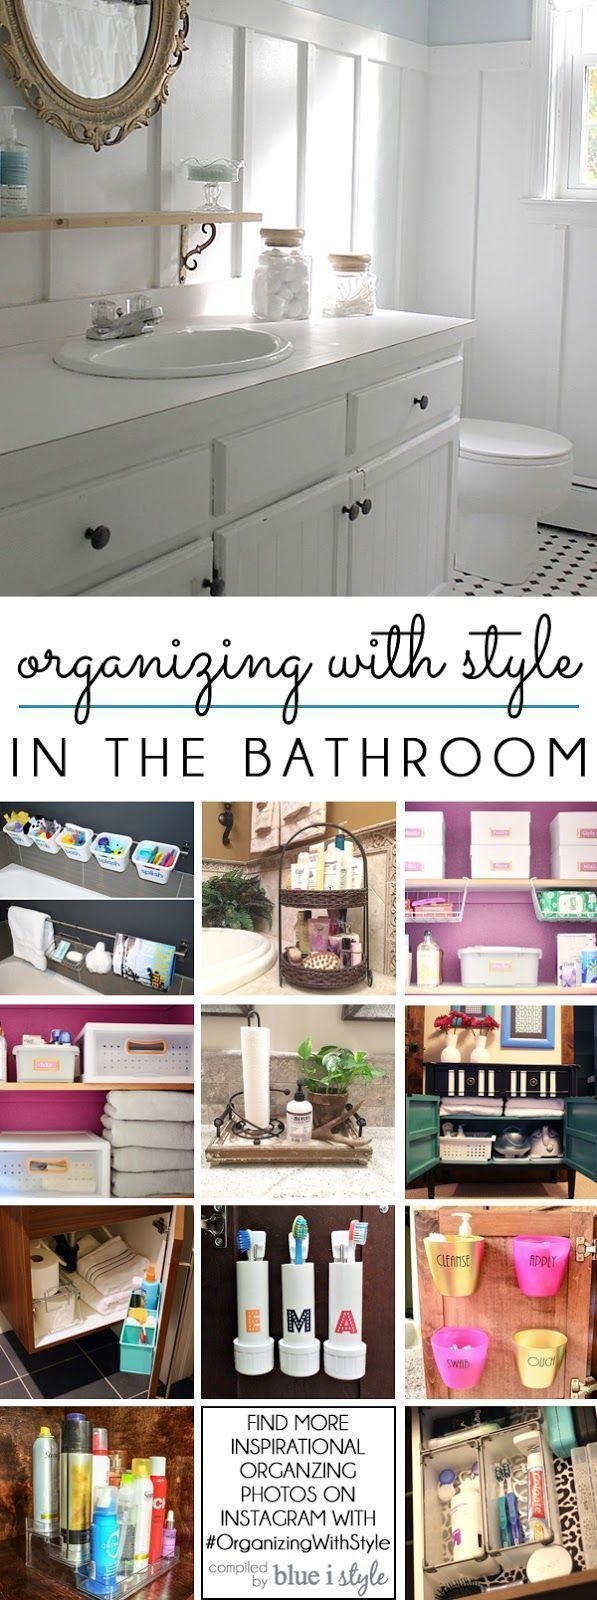 Decor Hacks Bathroom Organization Ideas 12 Great Tips